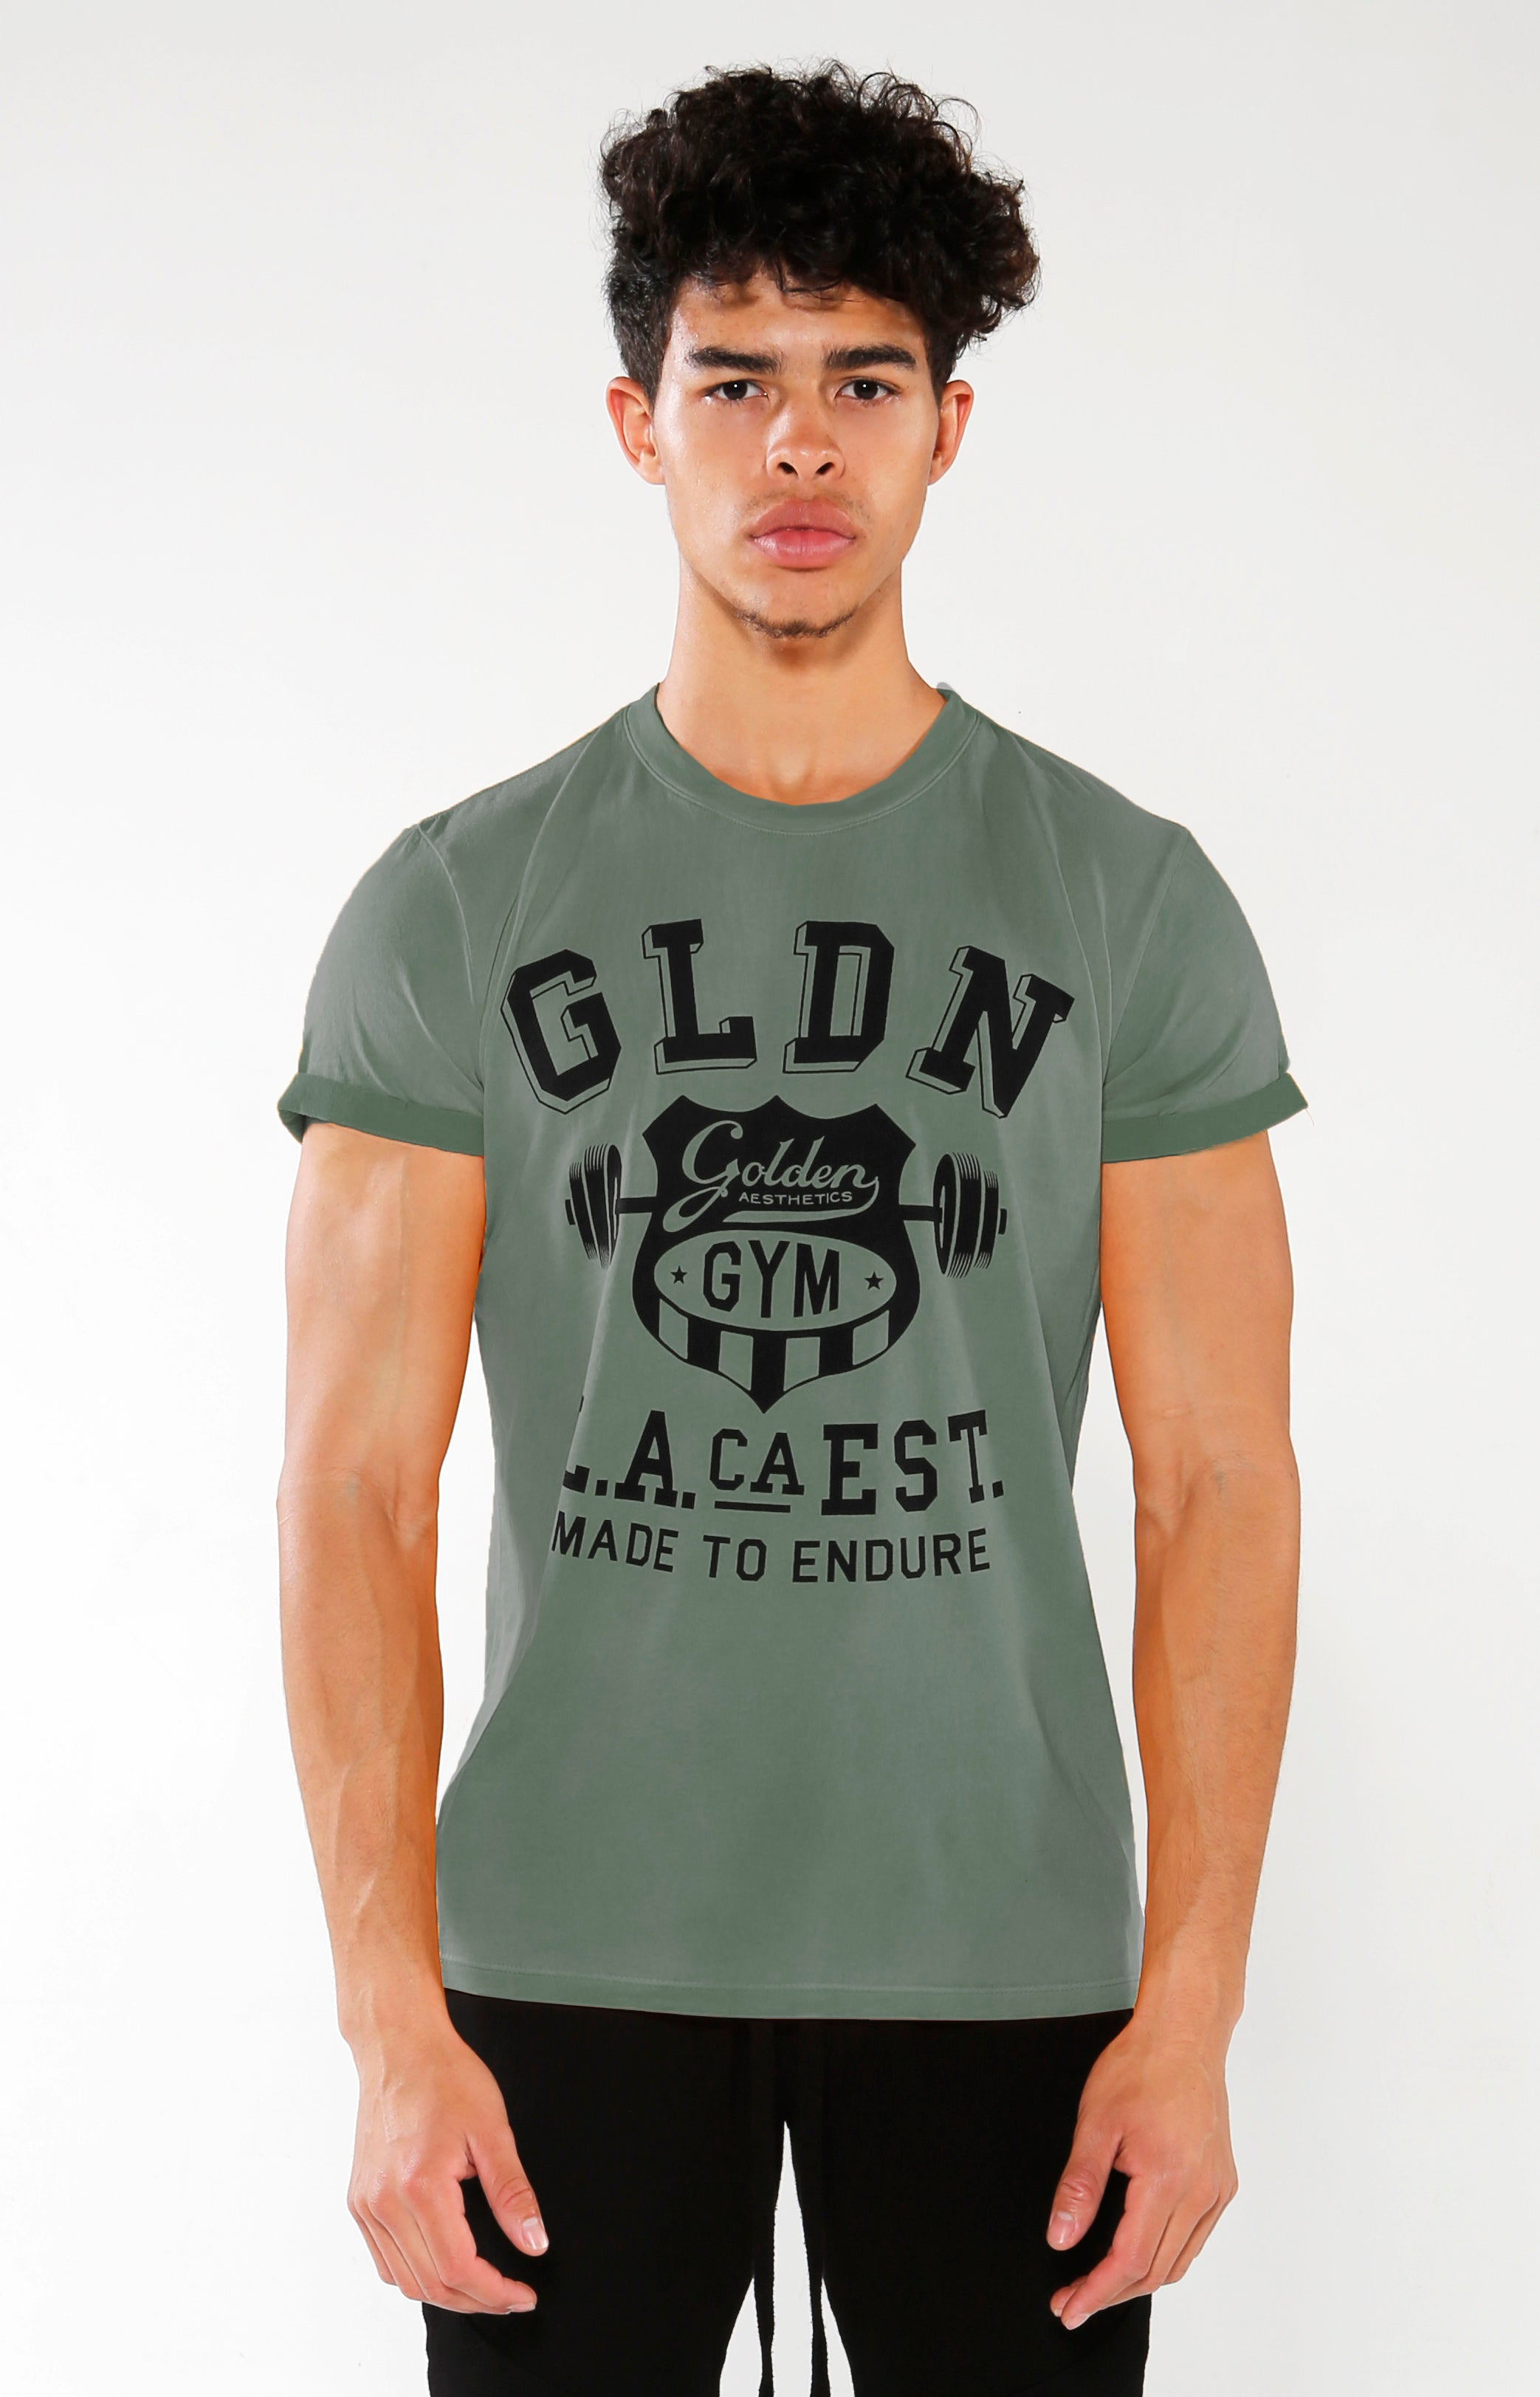 Men's Green GLDN Crest T-Shirt | Golden Aesthetics - Golden Aesthetics